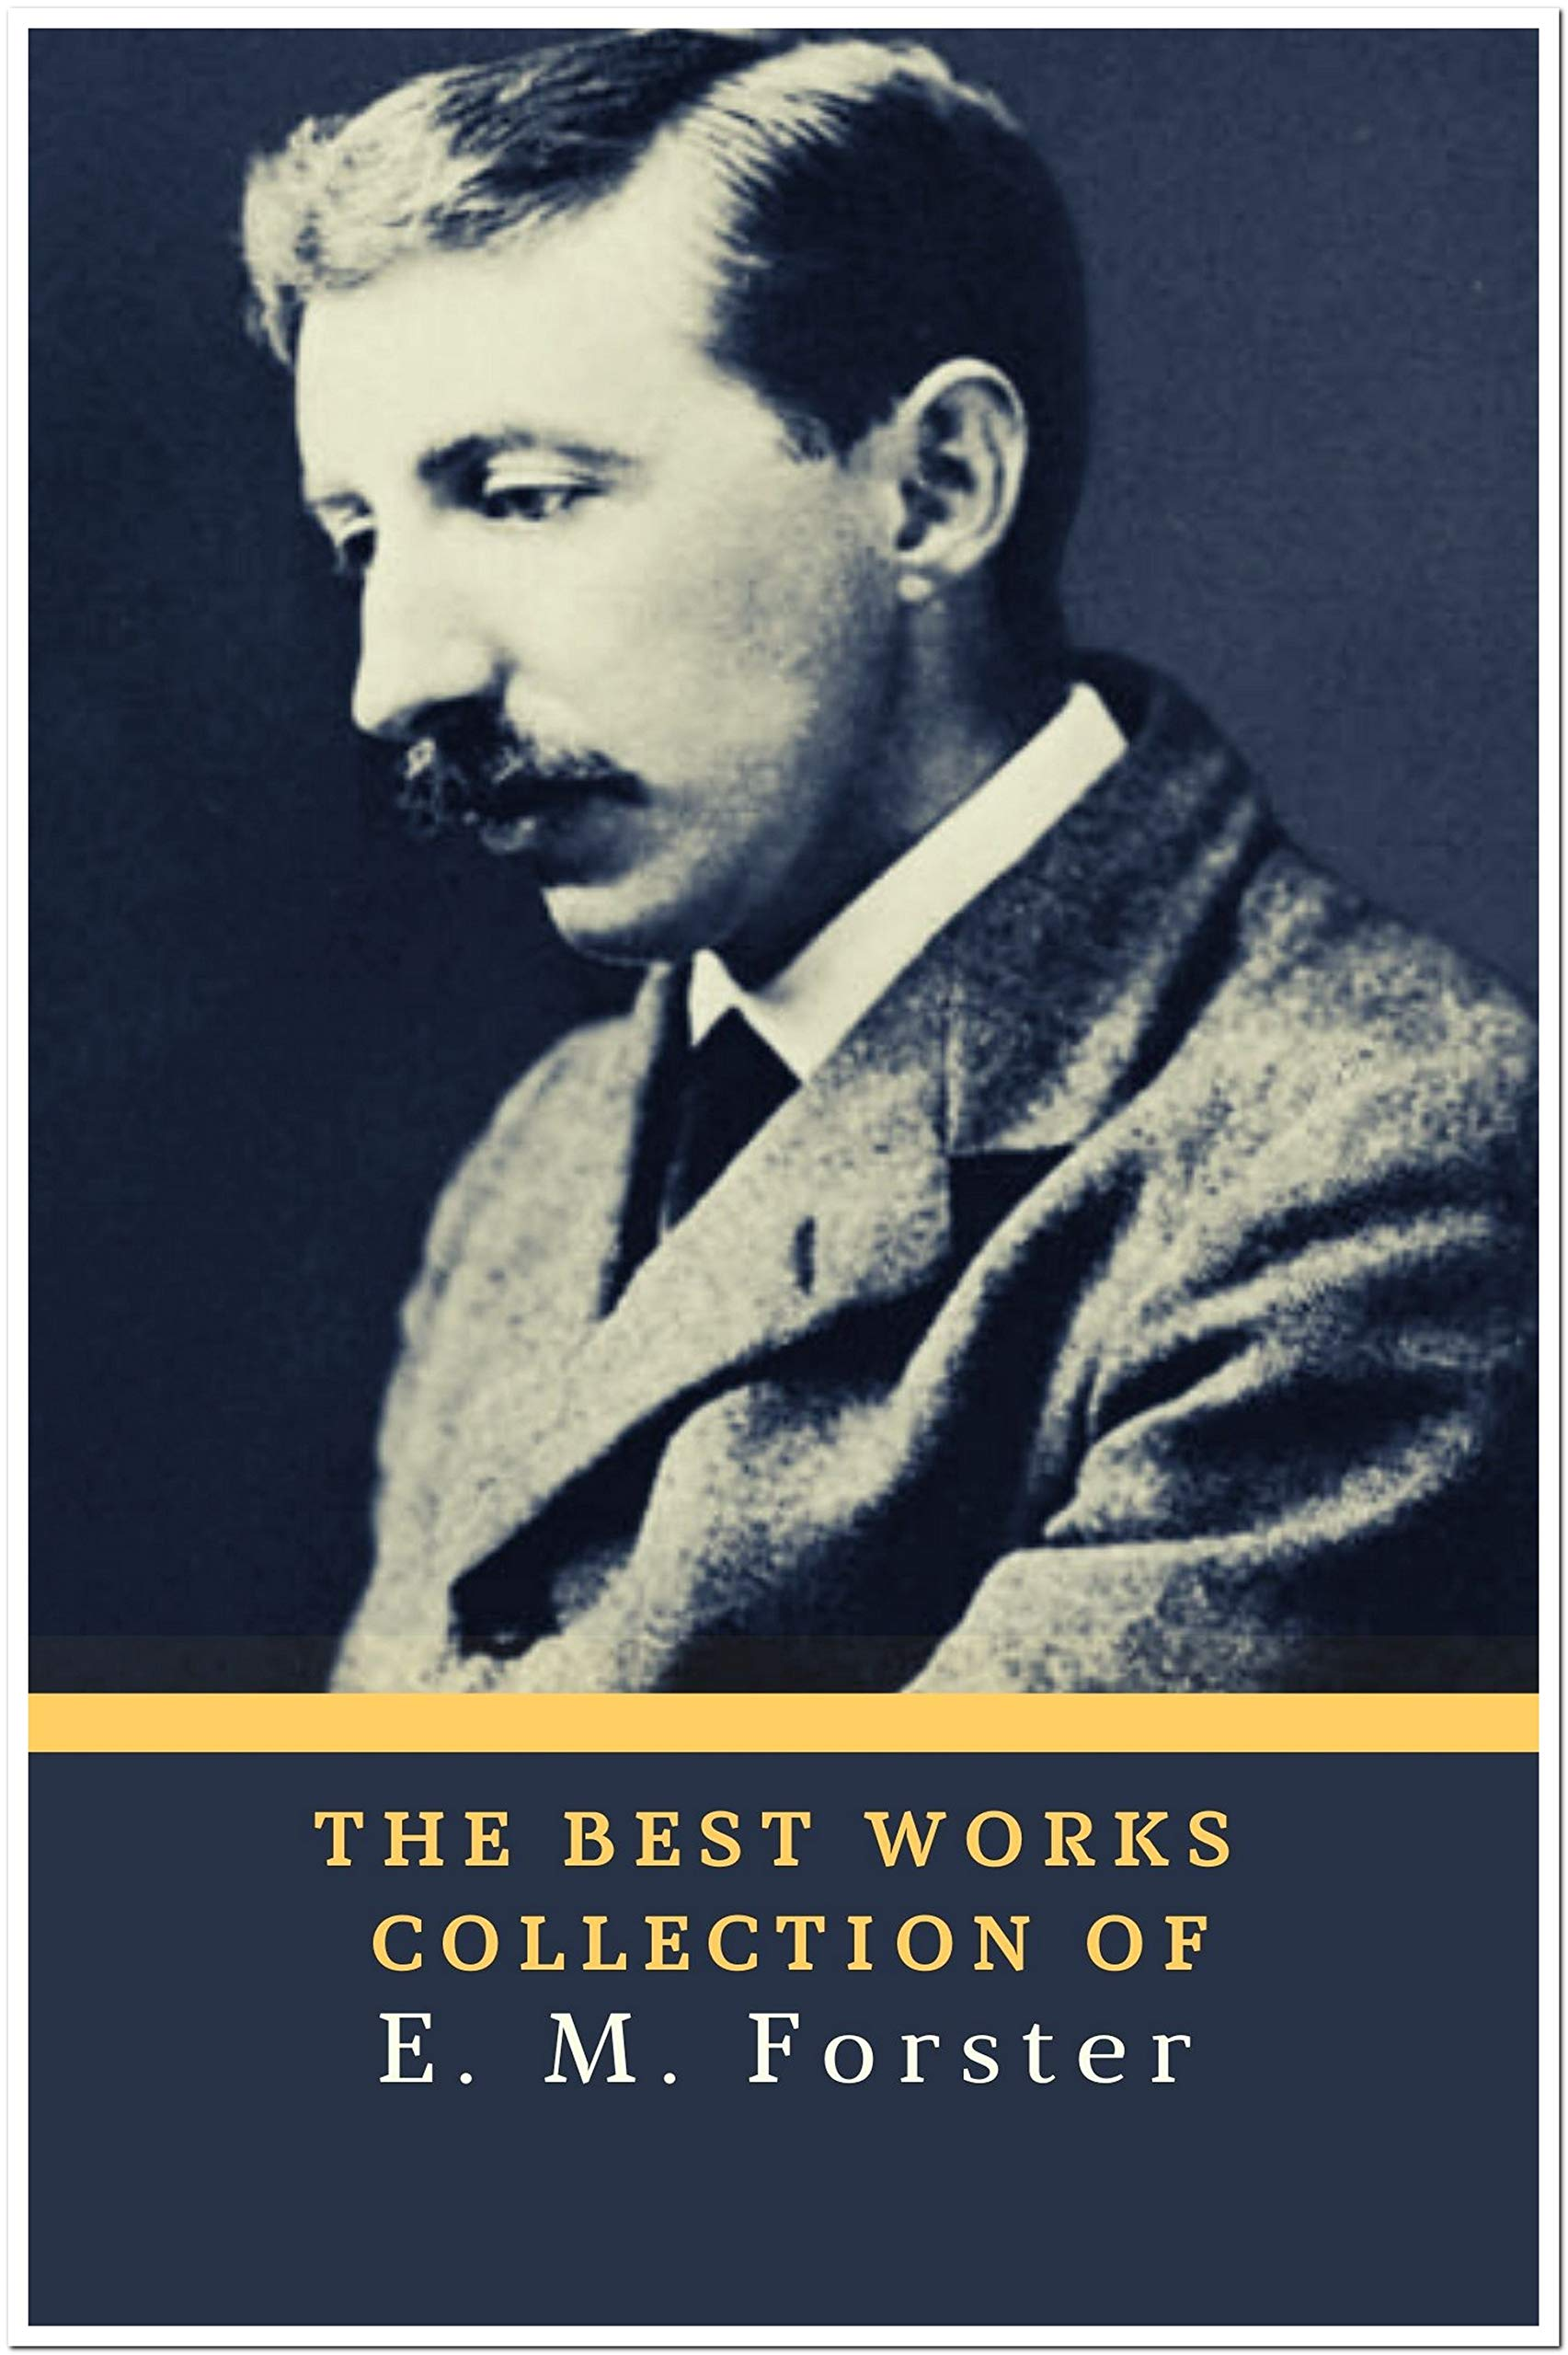 The Best Works Collection of E. M. Forster (Annotated): Collection Includes A Room With A View, Howards End, The Celestial Omnibus, The Longest Journey, The Machine Stops,And More